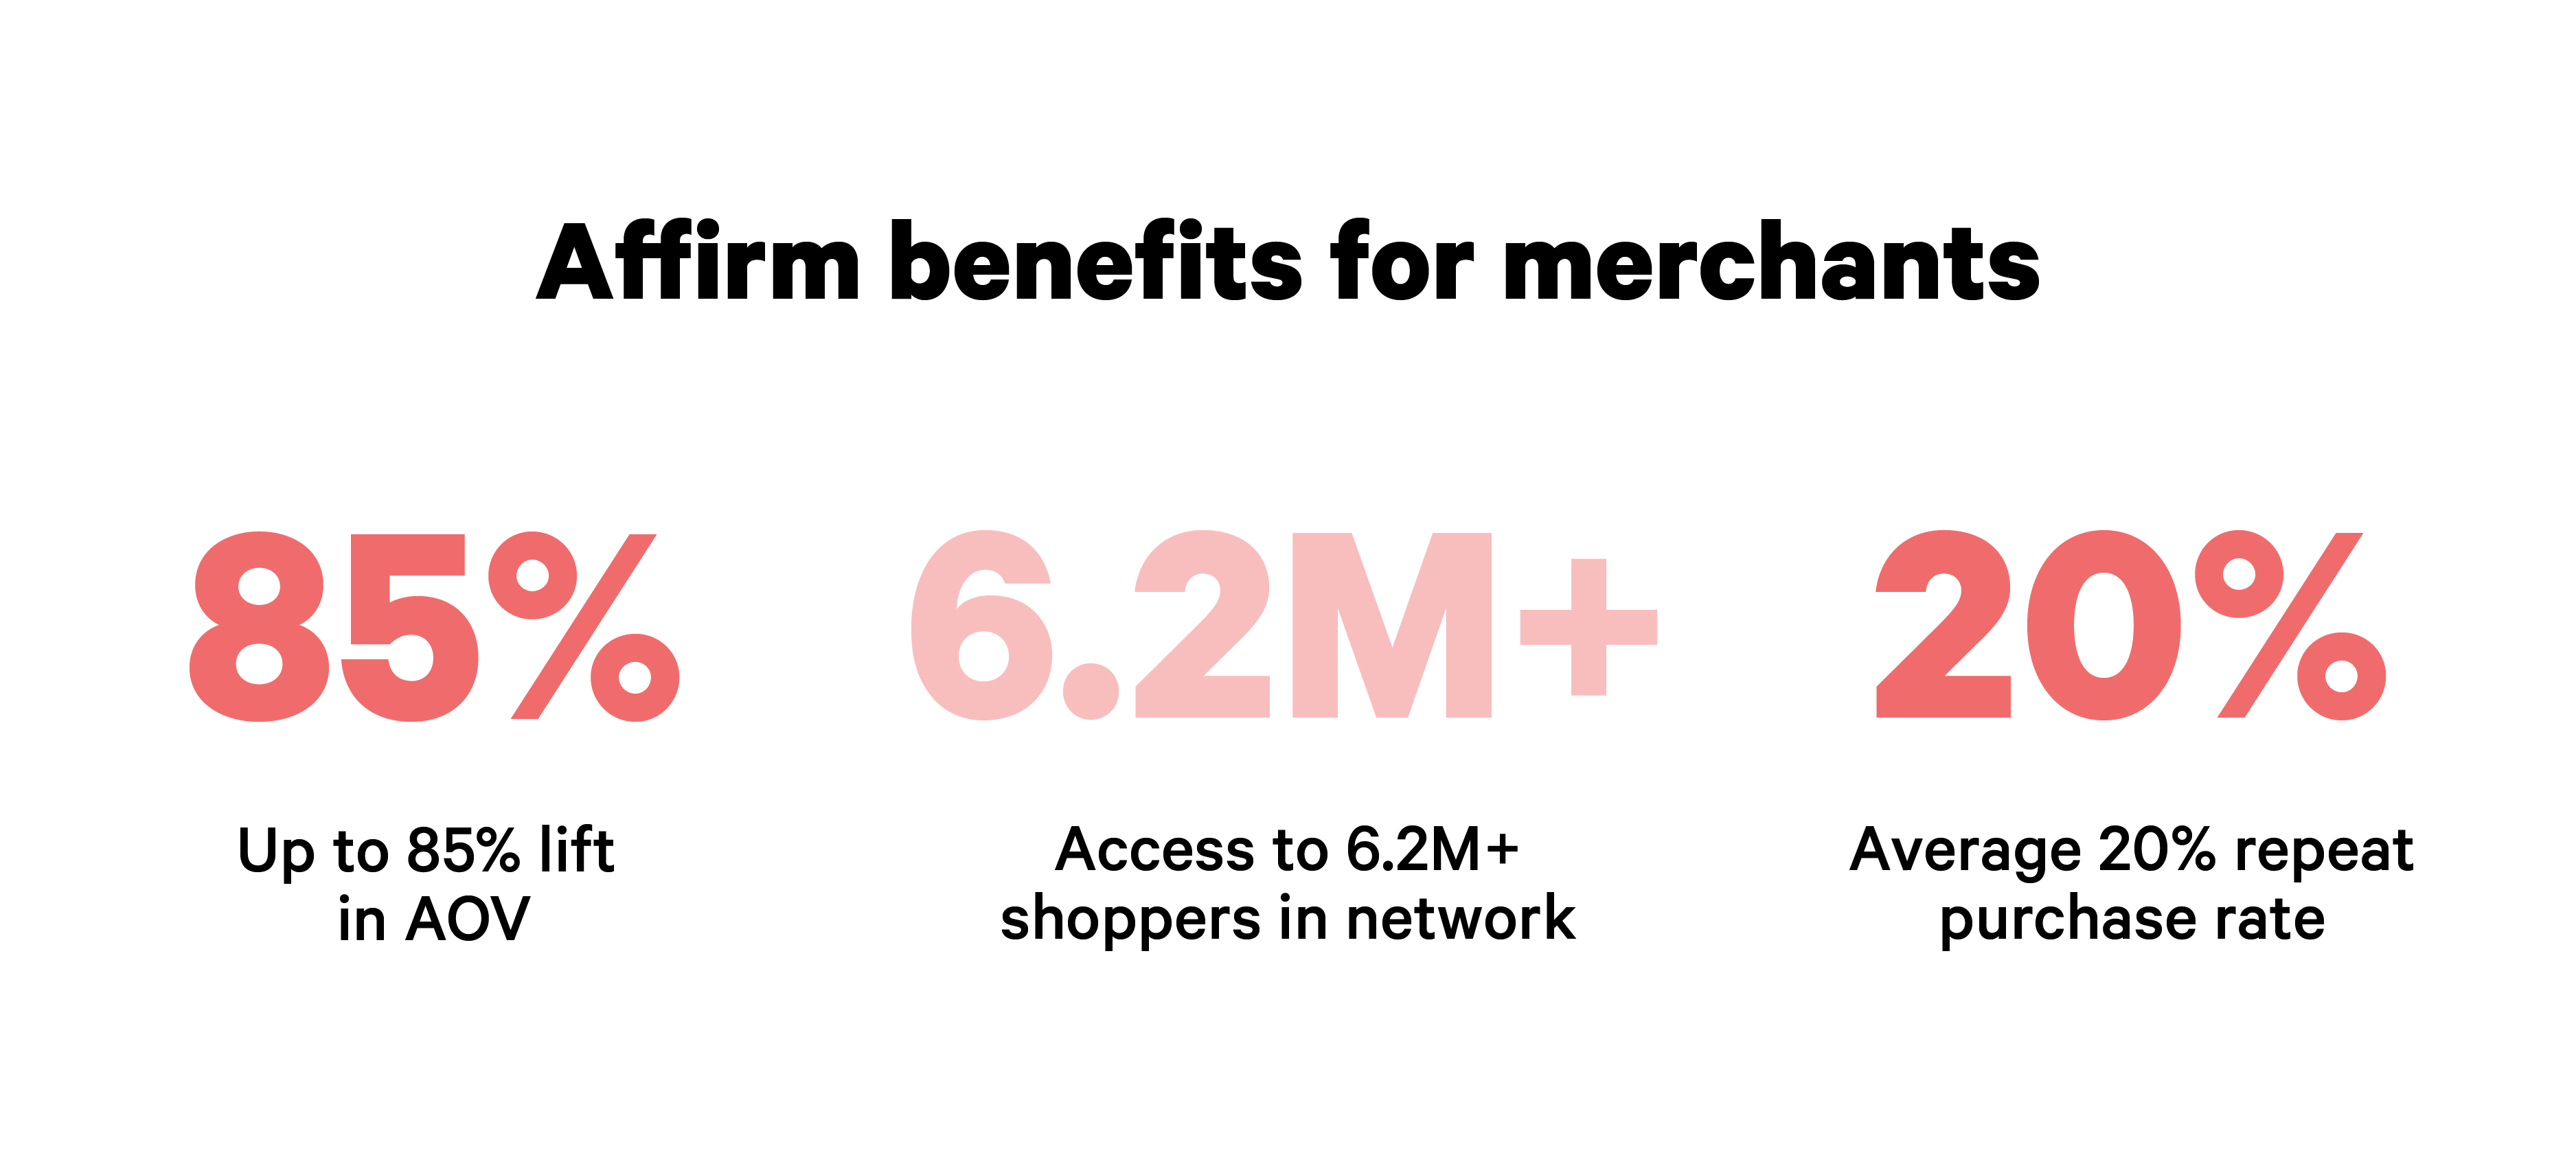 Graphic showing AOV and repeat purchase increases for merchants that partner with Affirm